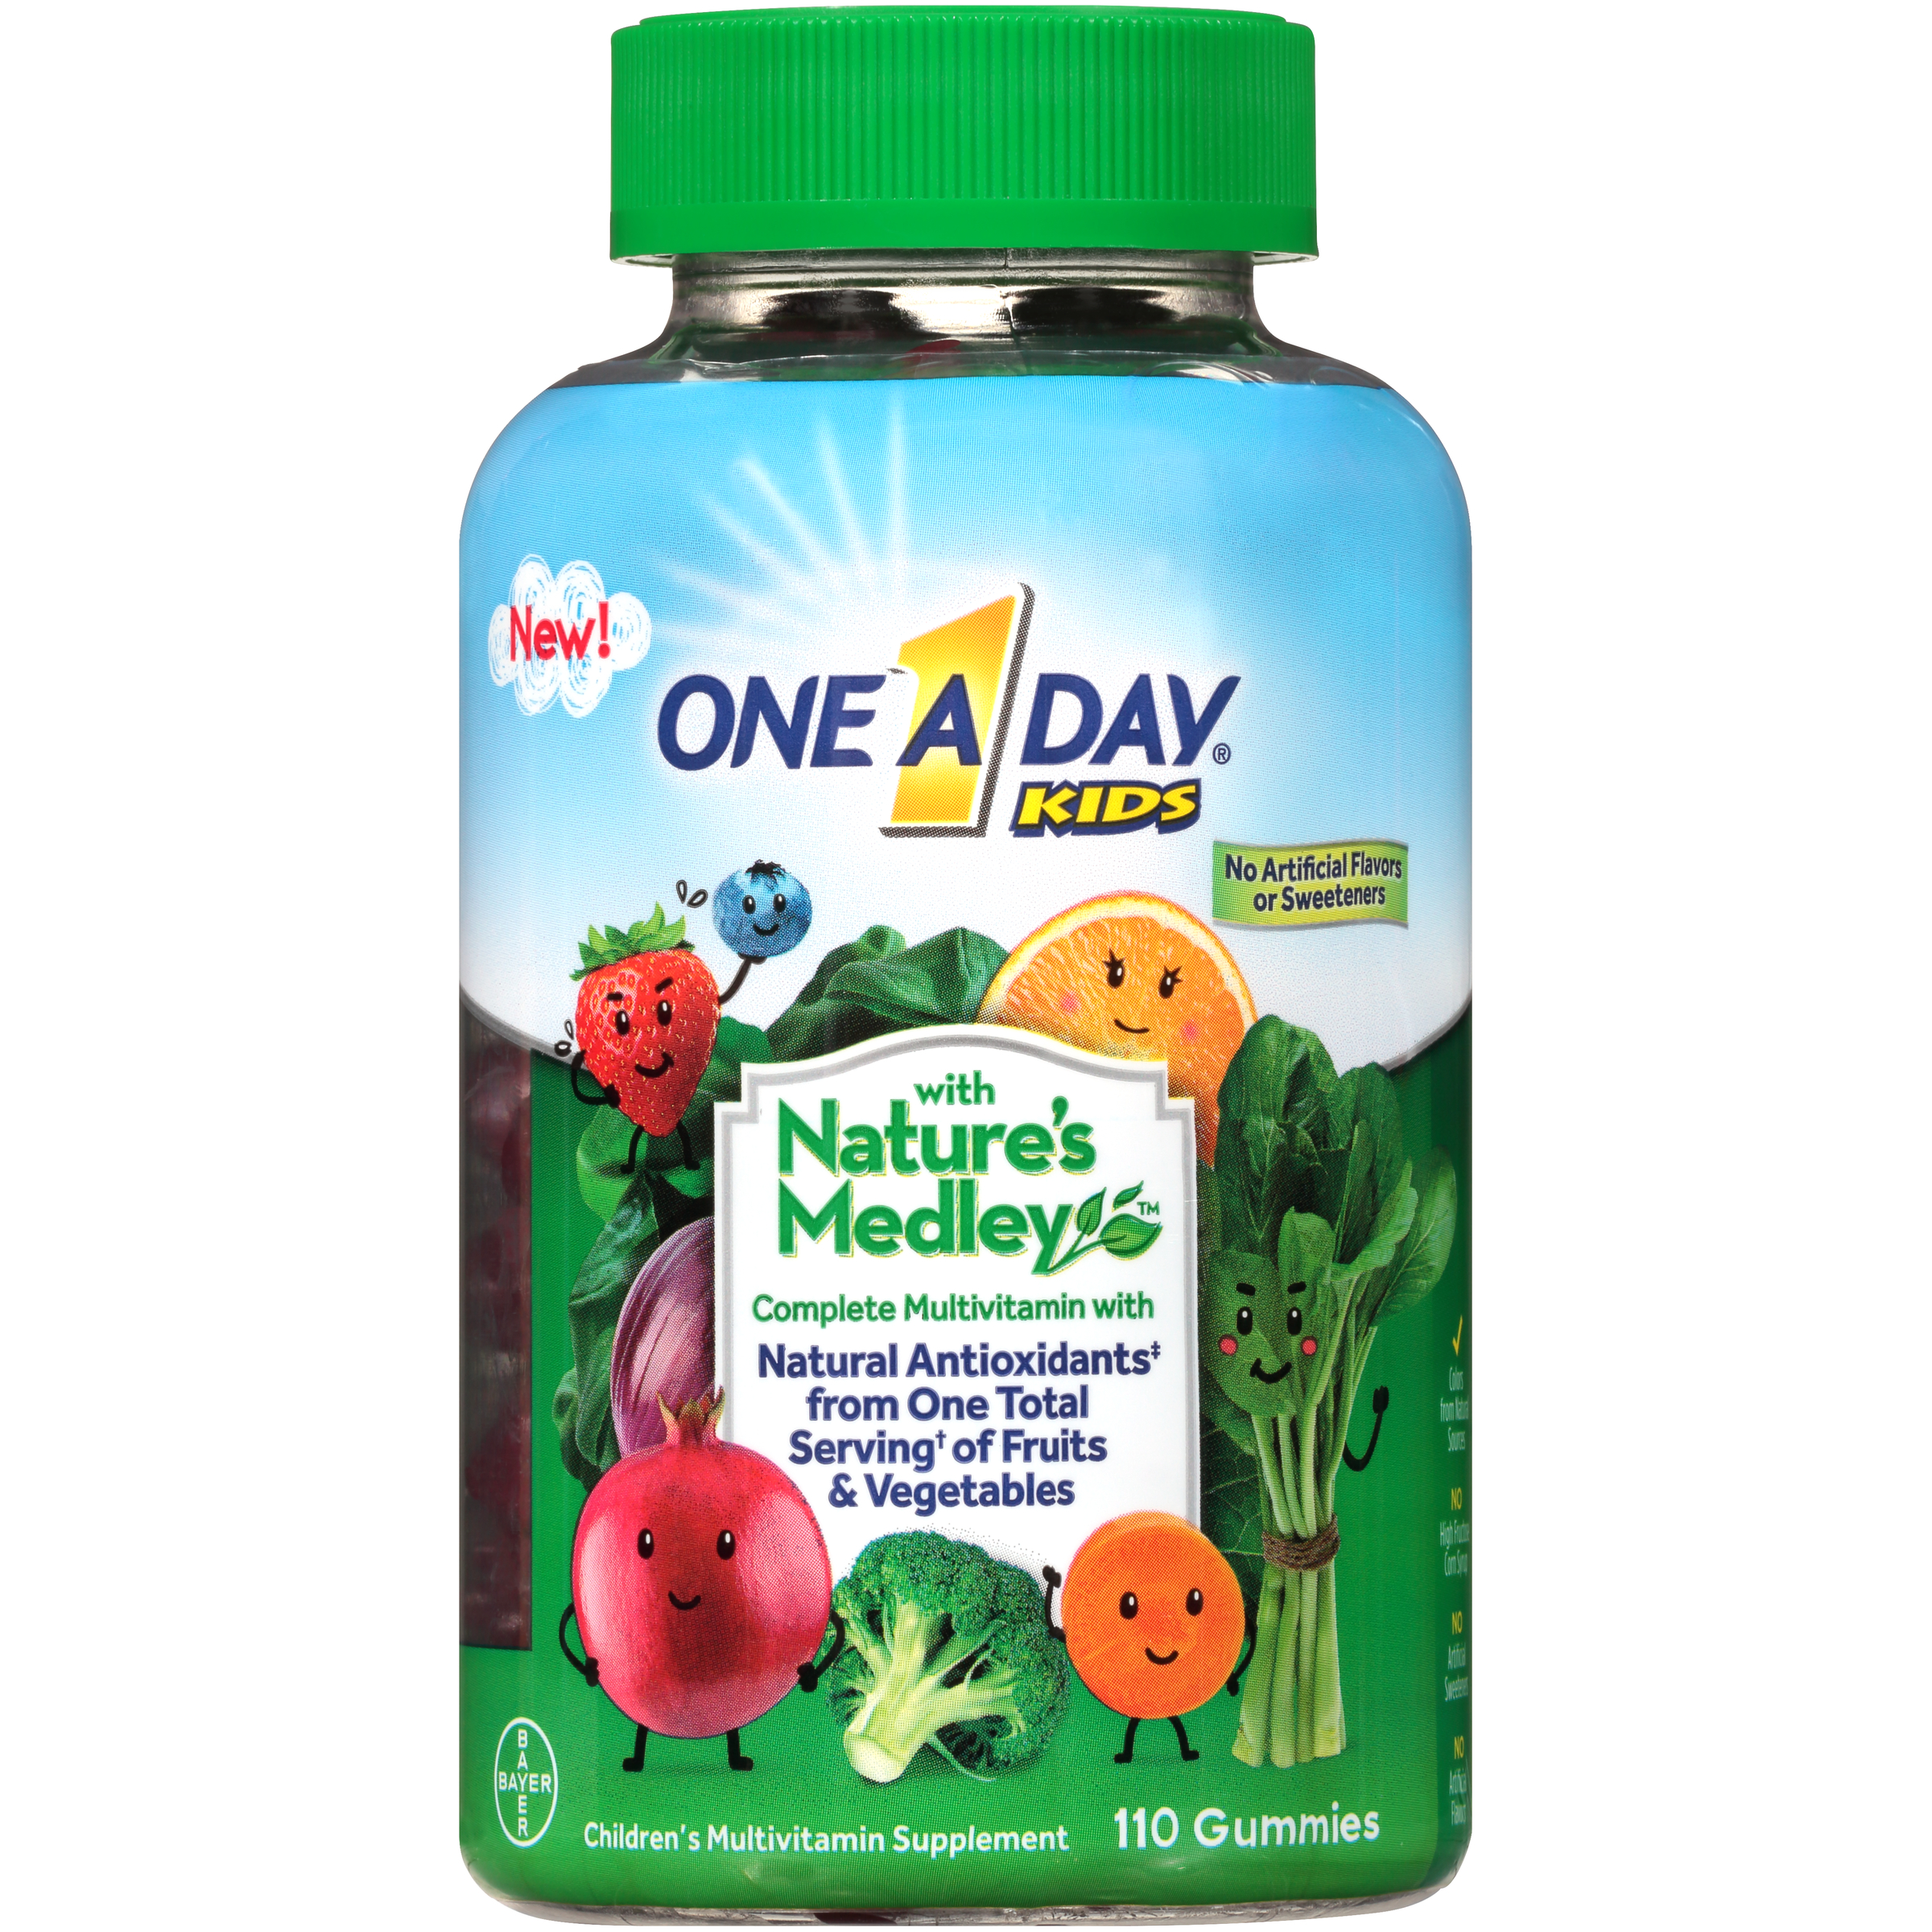 One A Day Kids with Nature's Medley Multivitamin Gummies, 110 Count